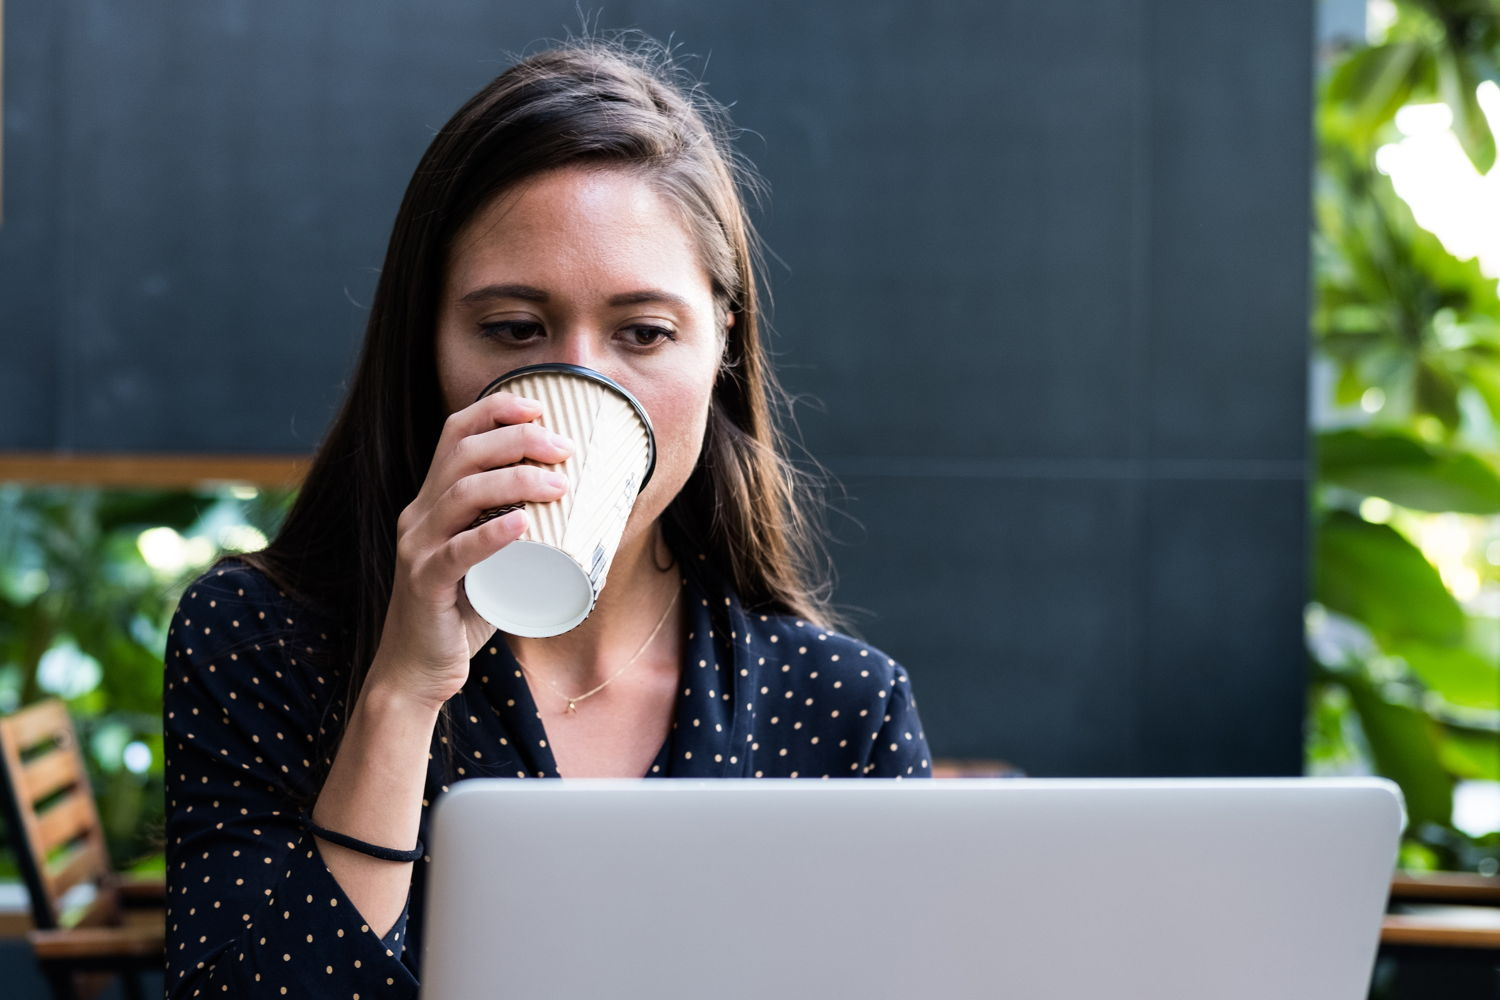 Woman researching wage discrimination